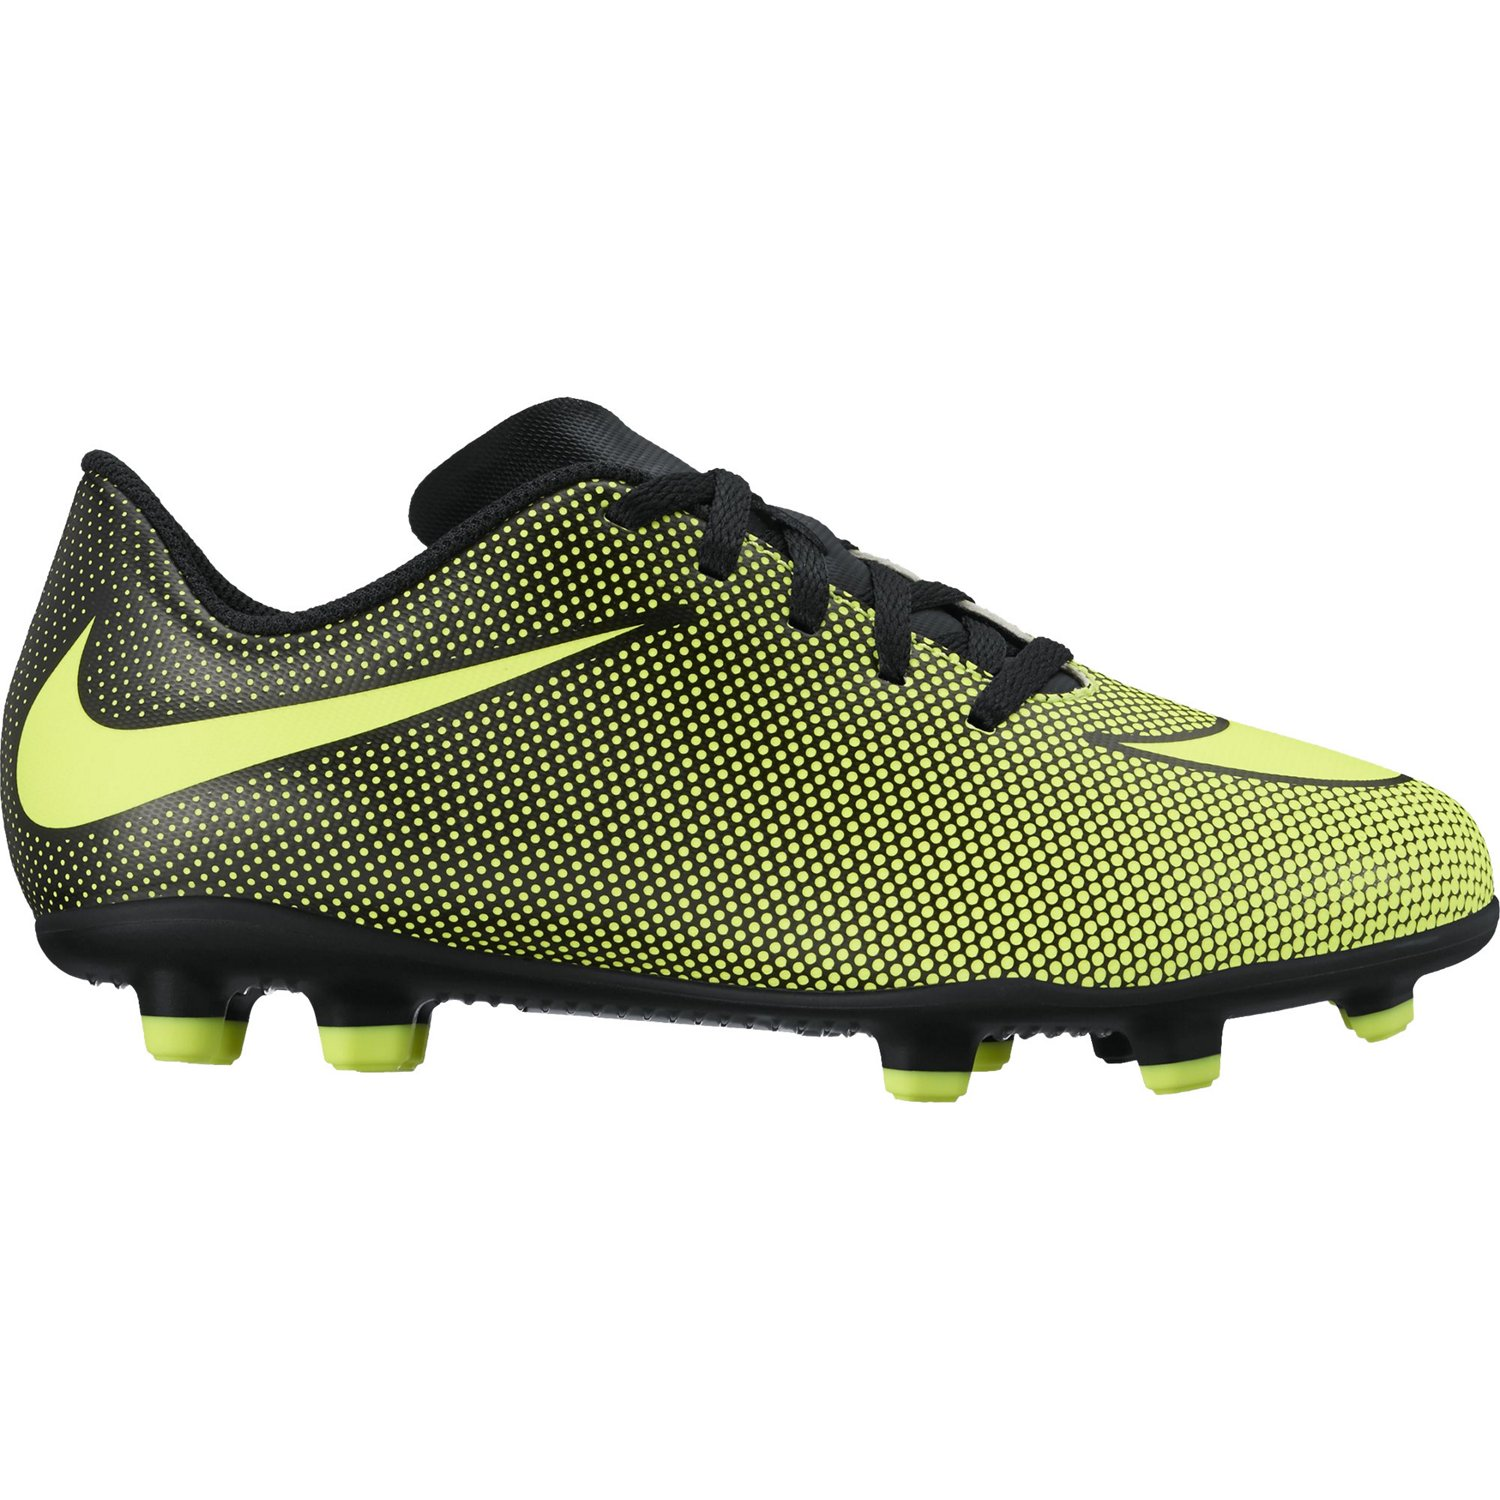 7ccd2ab06 Display product reviews for Nike Kids' Bravata II Firm Ground Soccer Cleats